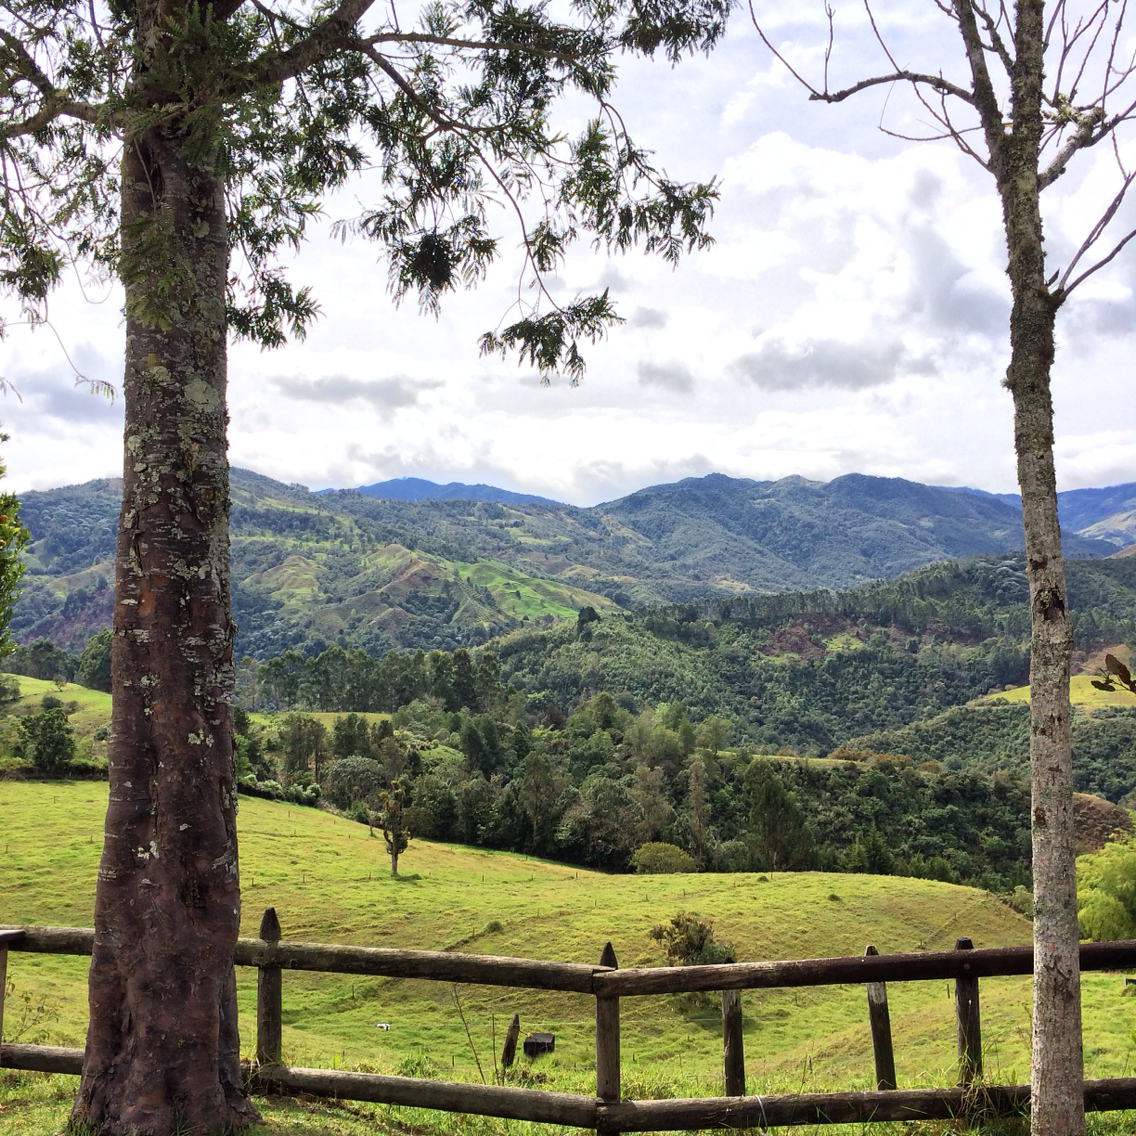 Valle de Cocora  Southwest Colombia, Valle de Cocora trek to see the wax palms near Salento in Colombia ...